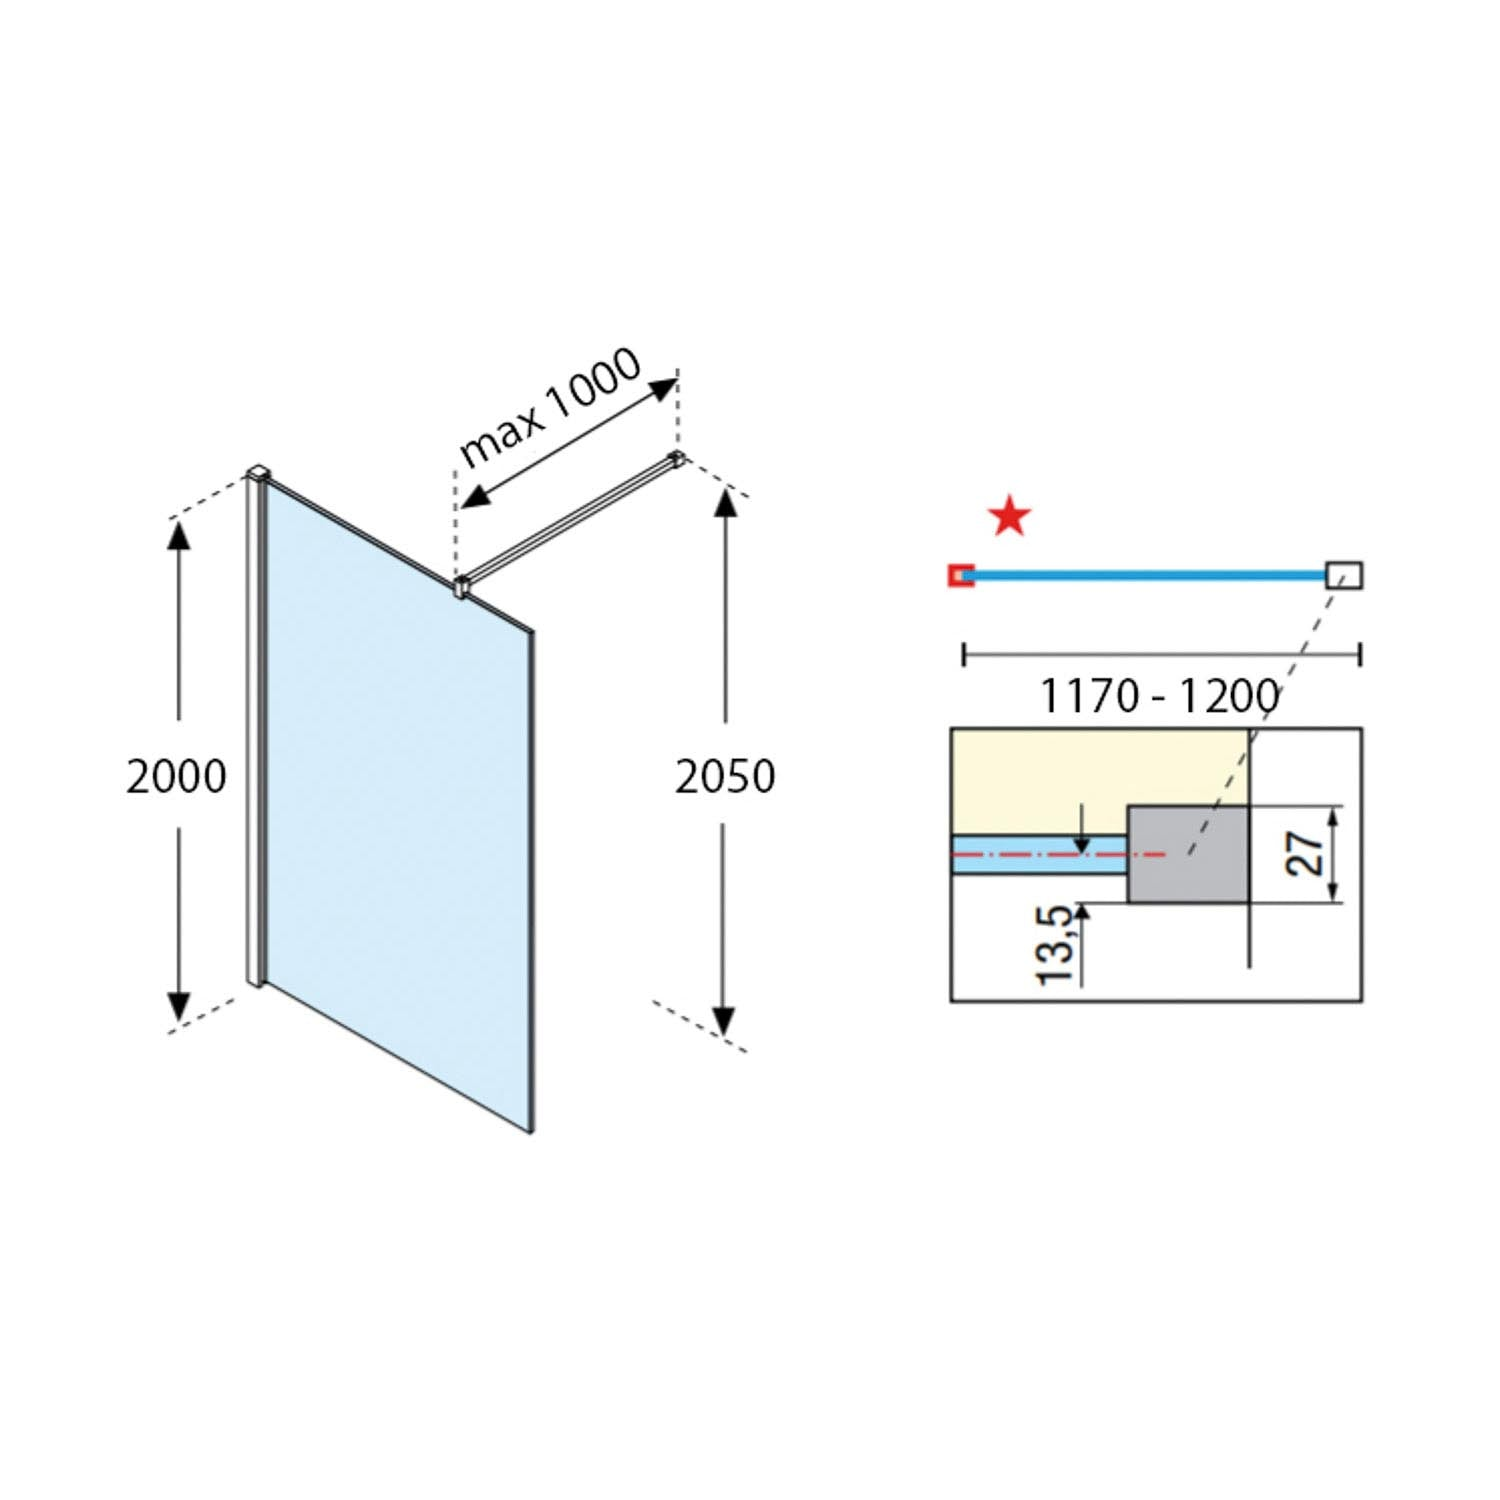 1170-1200mm Ergo Wet Room Screen Satin Band Glass with a chrome finish dimensional drawing